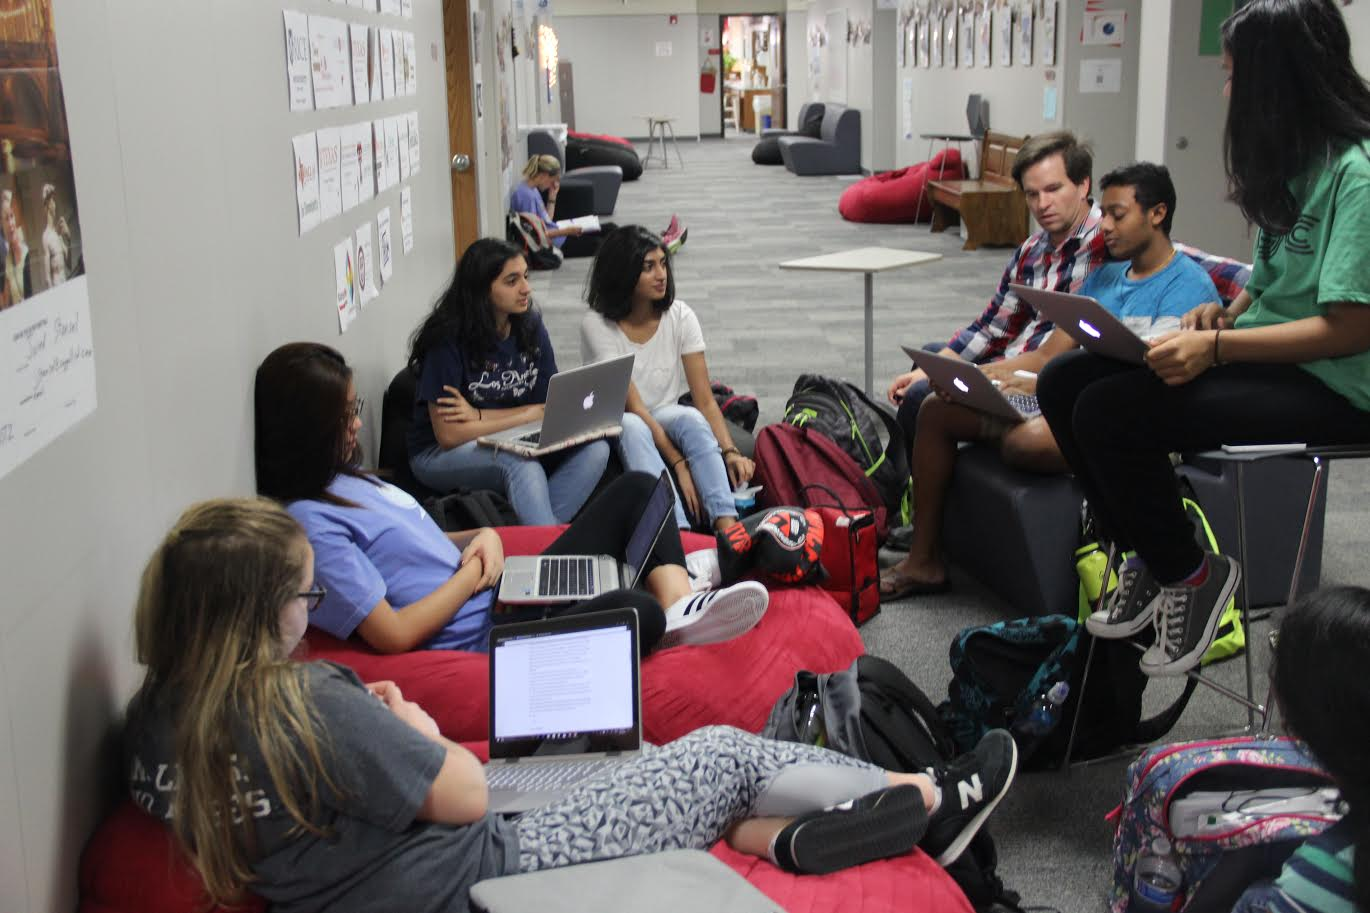 The Coppell High School KIVA club members gather in D hall with their sponsor, IB Economics teacher Jared Stansel, for their weekly meeting. The group discussed club elections and how they would choose what small businesses to fund.